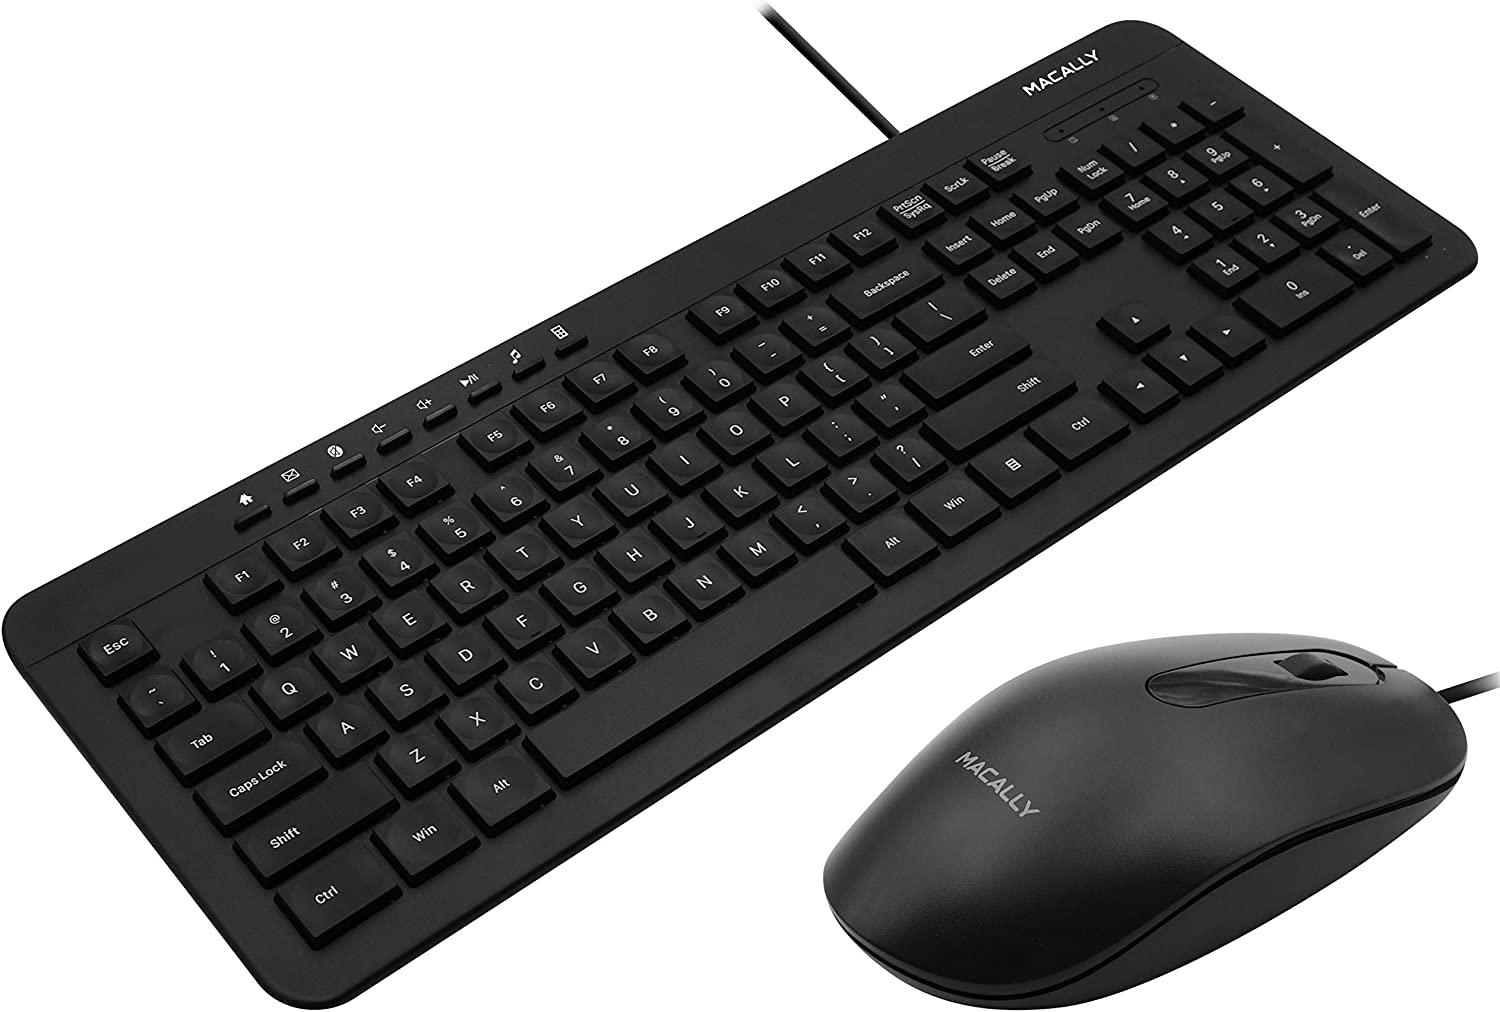 Macally USB Wired Keyboard and Mouse Combo Bundle - Simple & Easy to Use Ultra Slim Keyboard Mouse Combo - Compatible with Windows 10/8/7/Vista/Xp, etc. - Plug & Play